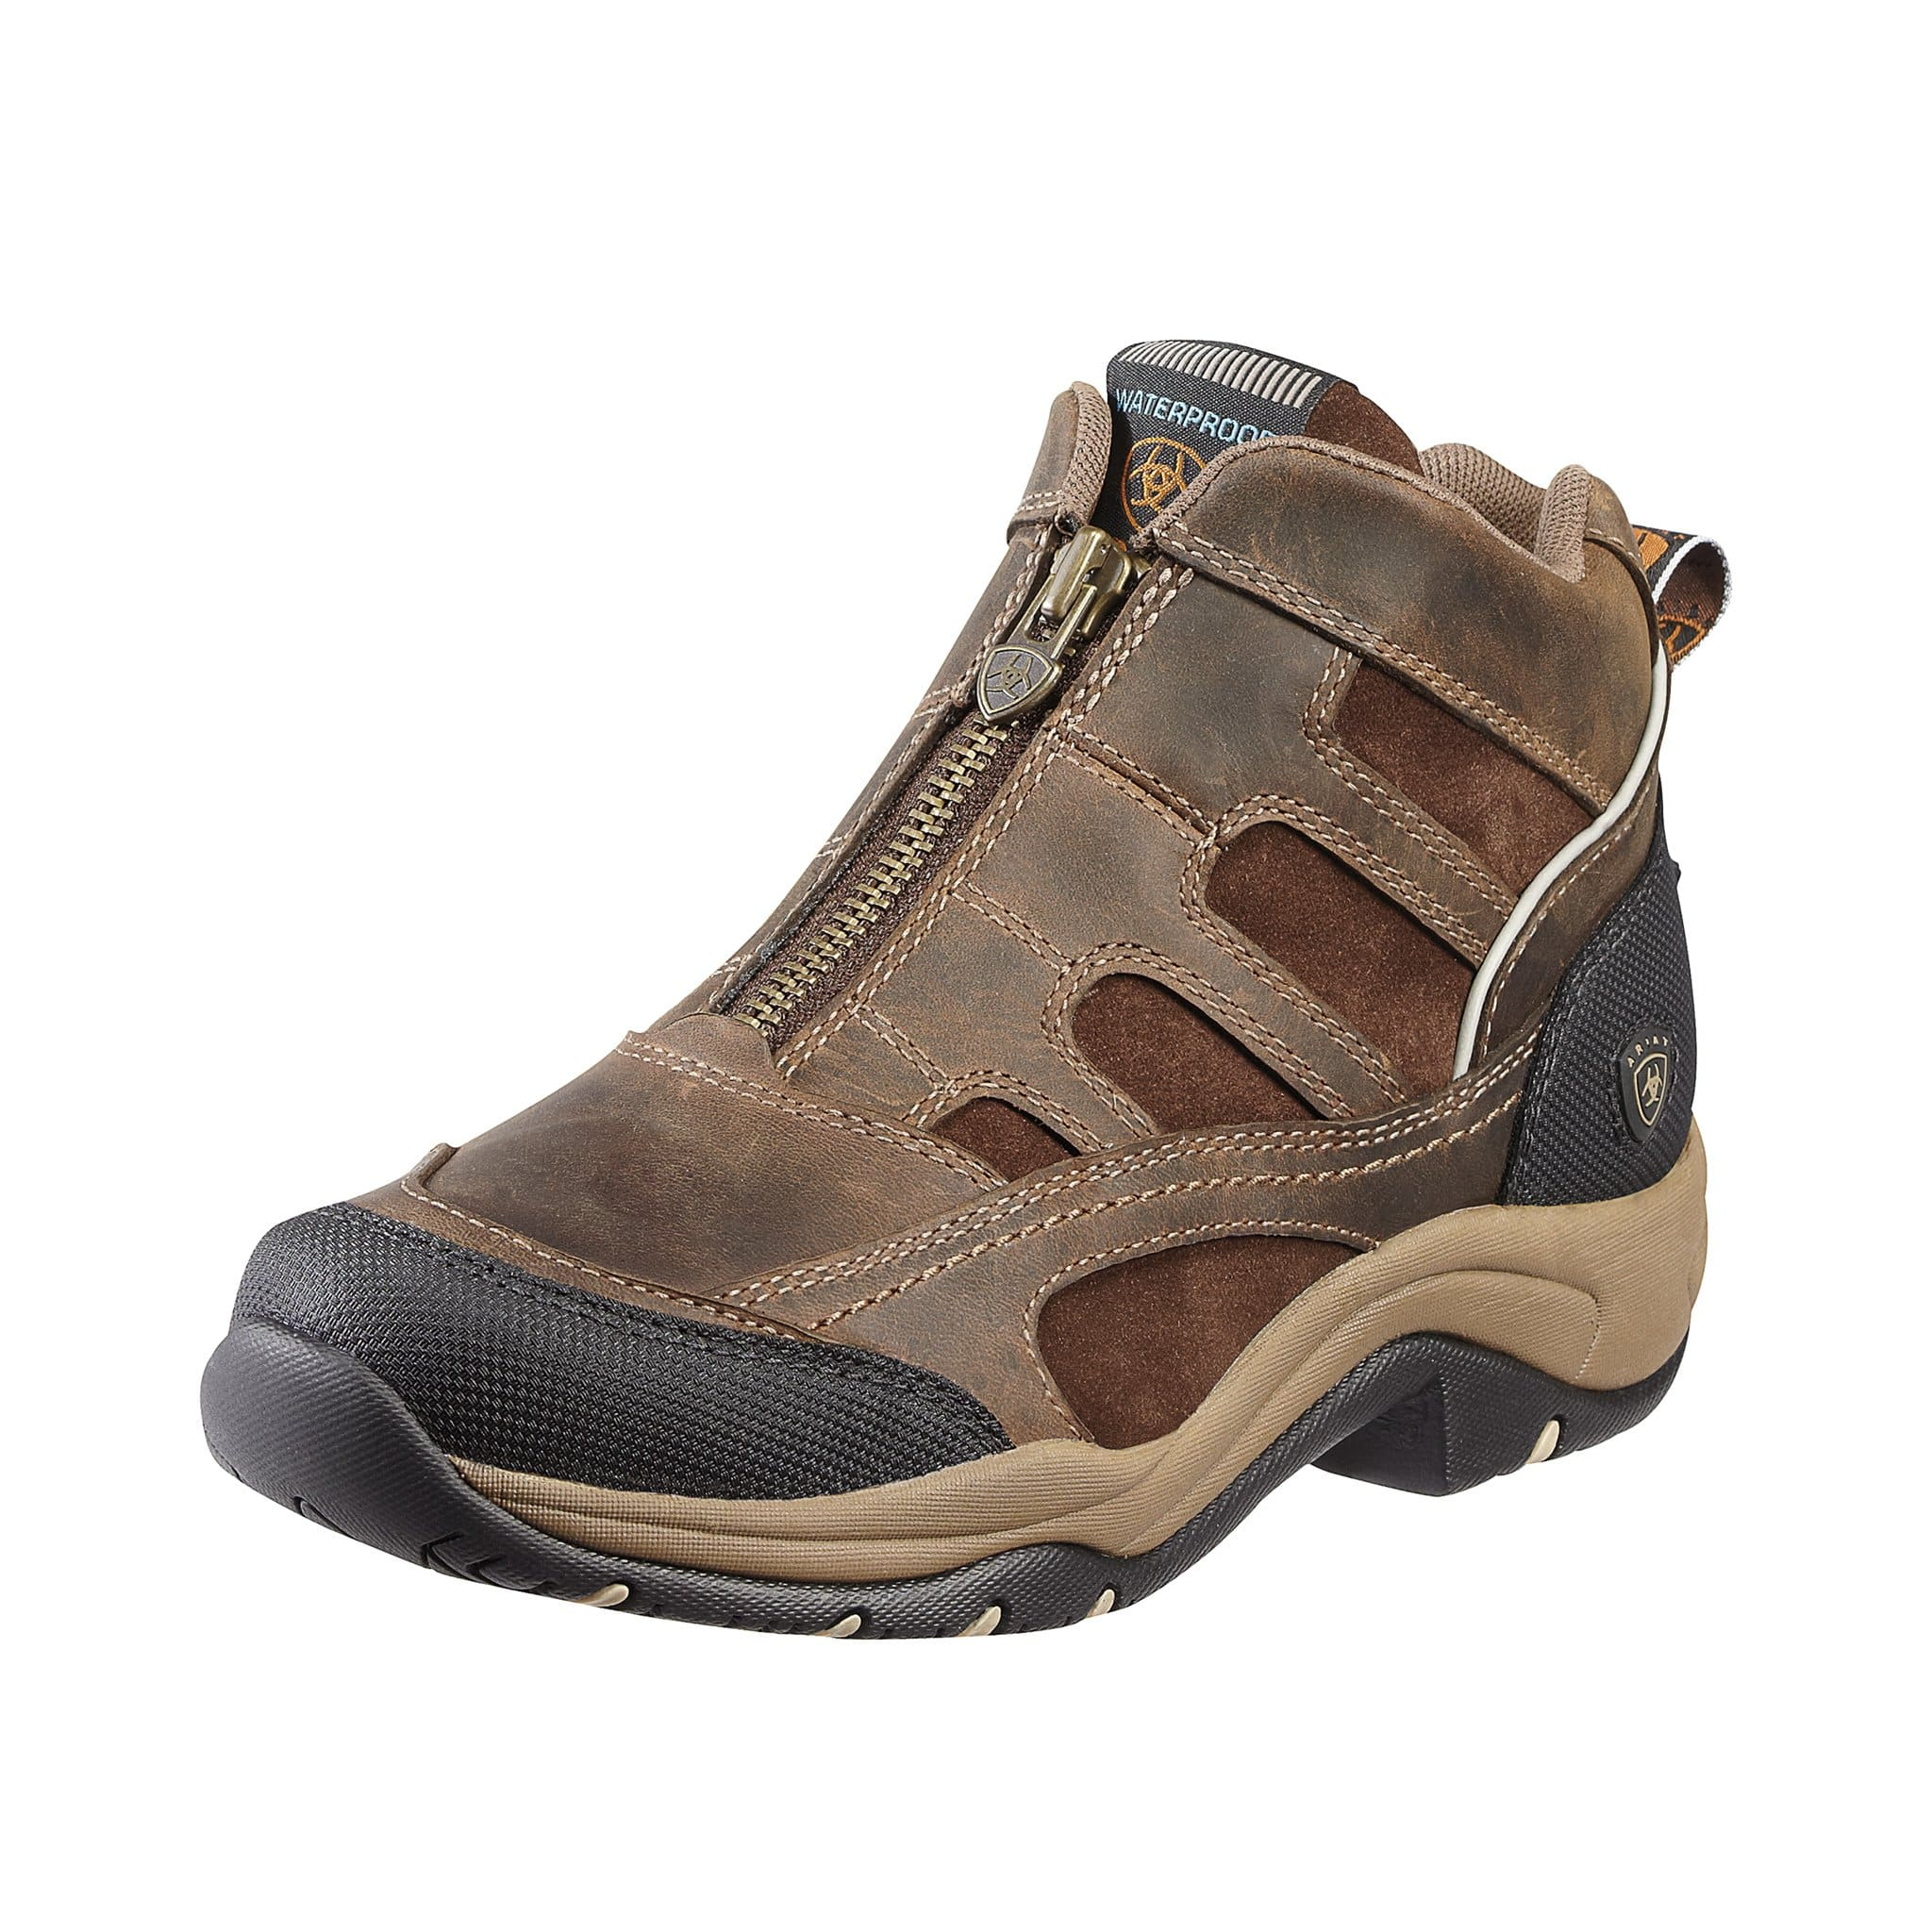 Ariat Terrain H2O Zip Boot in Distressed Brown 10010167